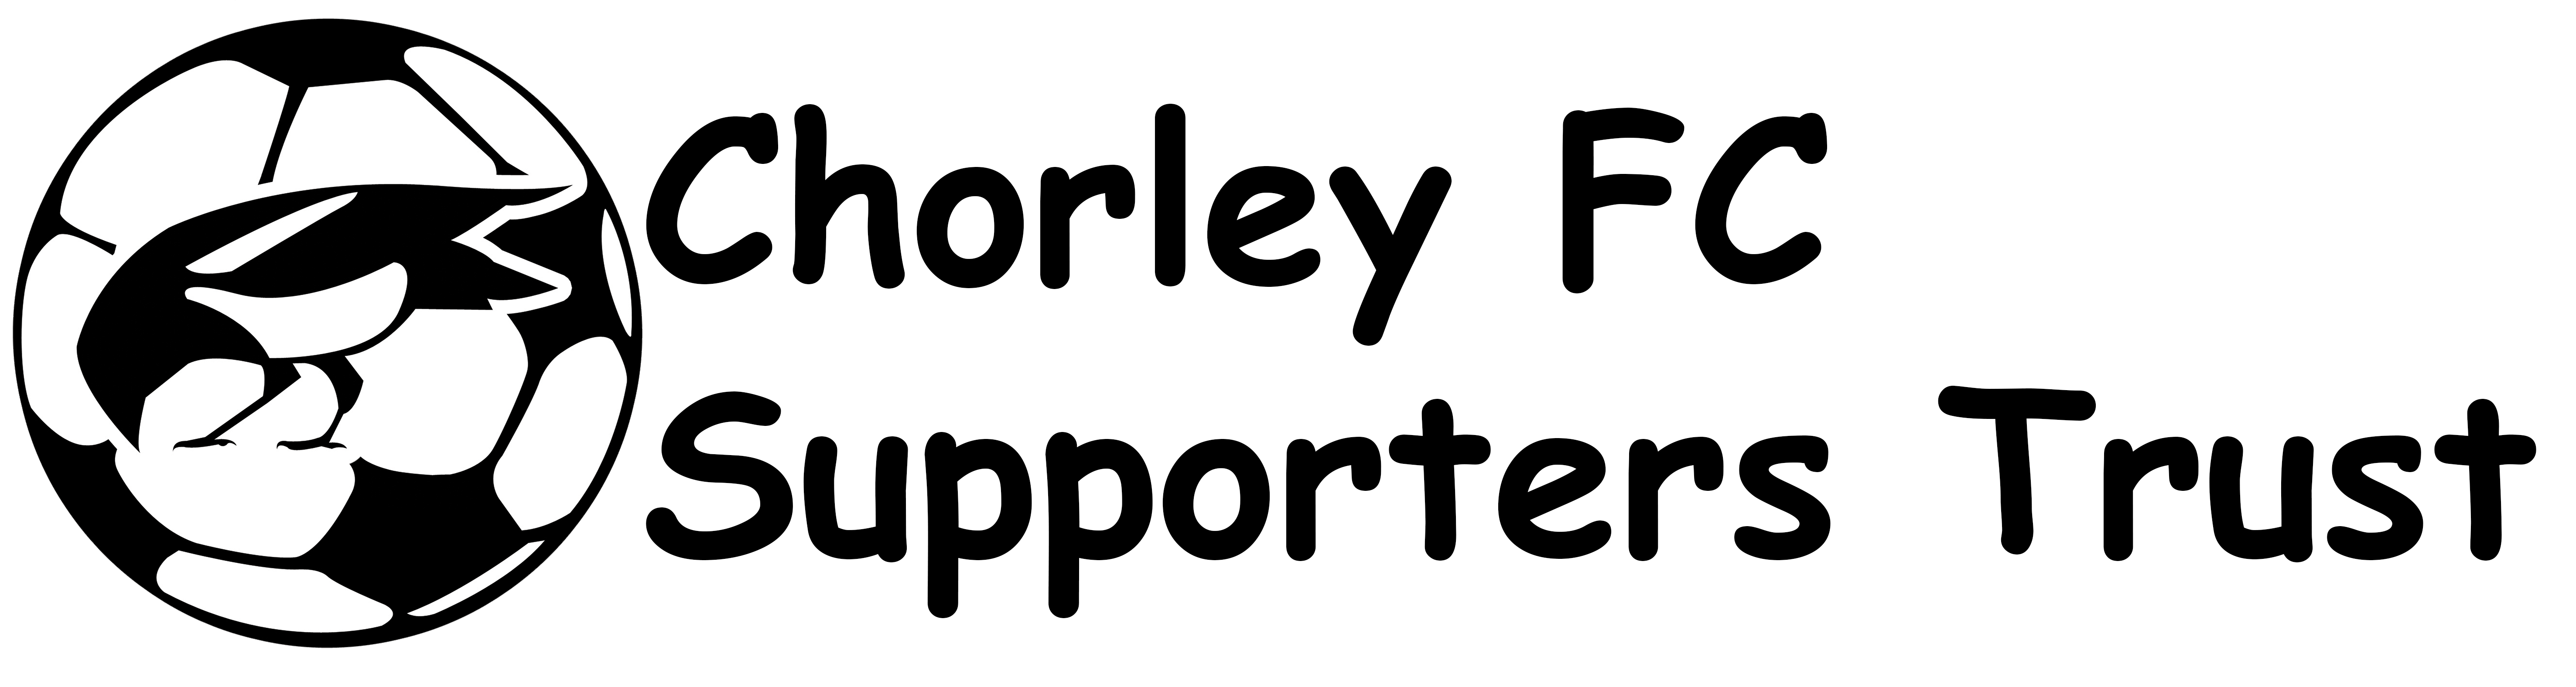 Chorley Supporters Trust